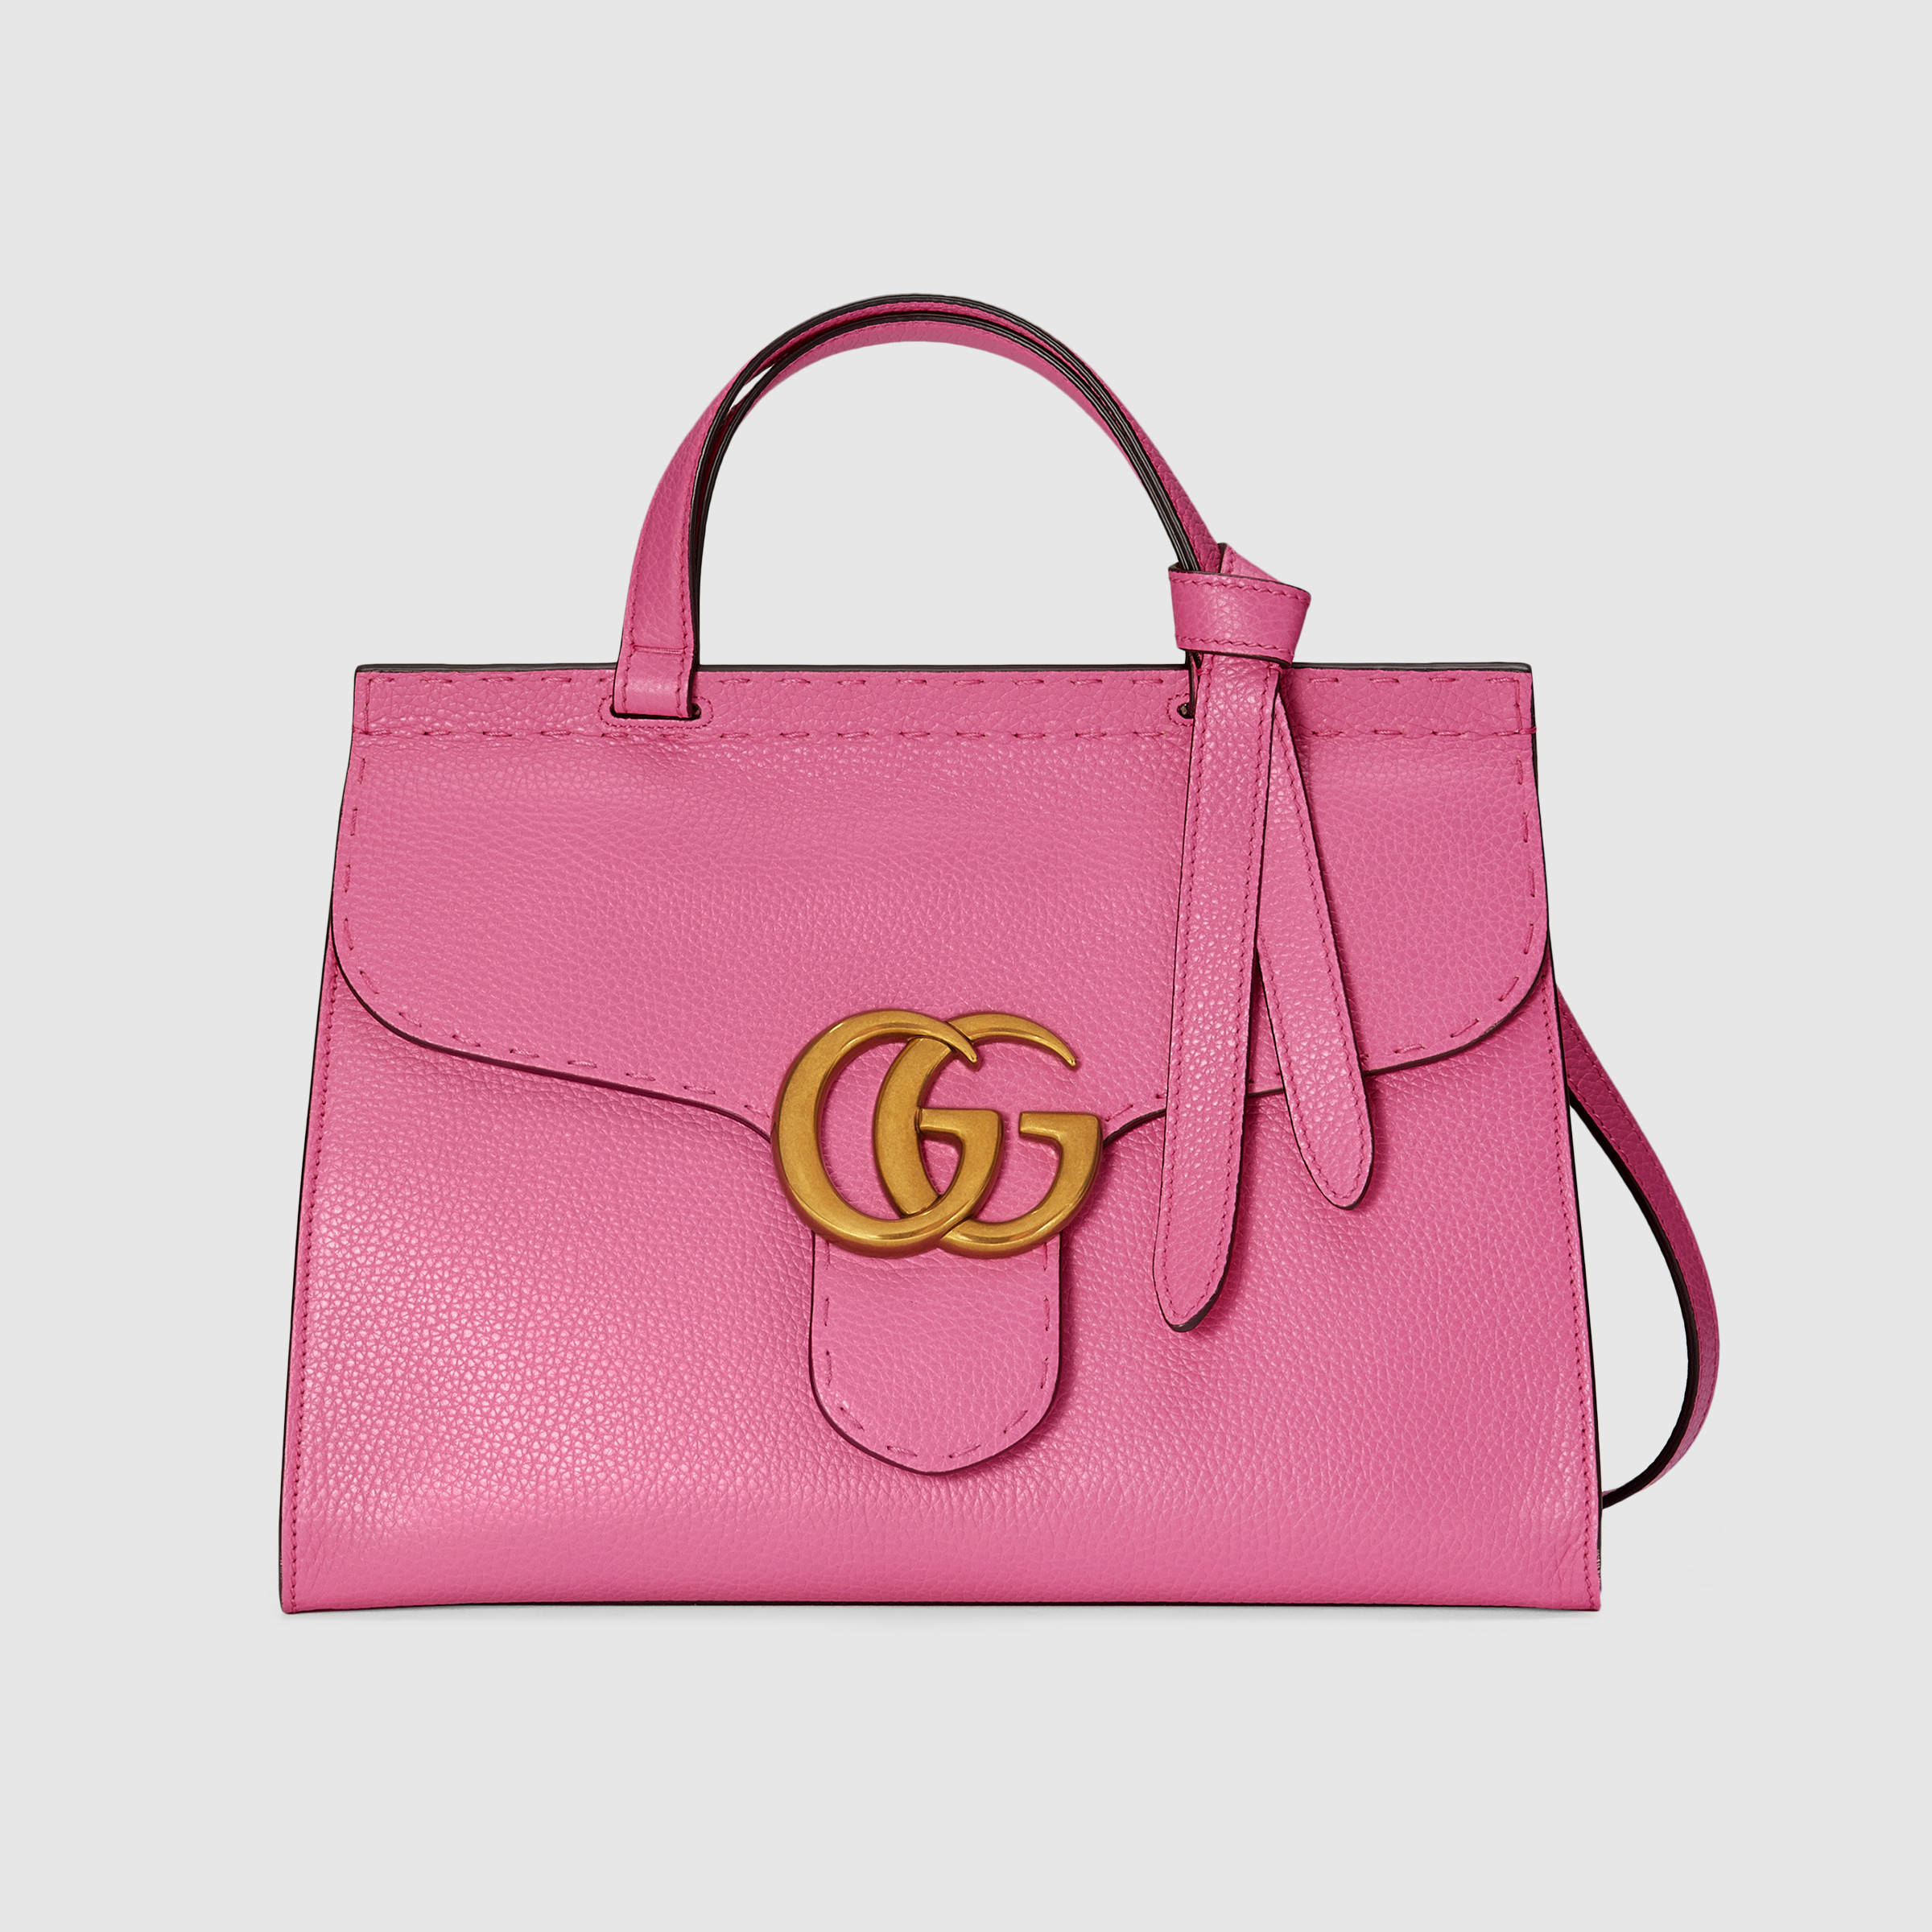 Gucci GG Marmont Leather Top Handle Bag In Pink Lyst